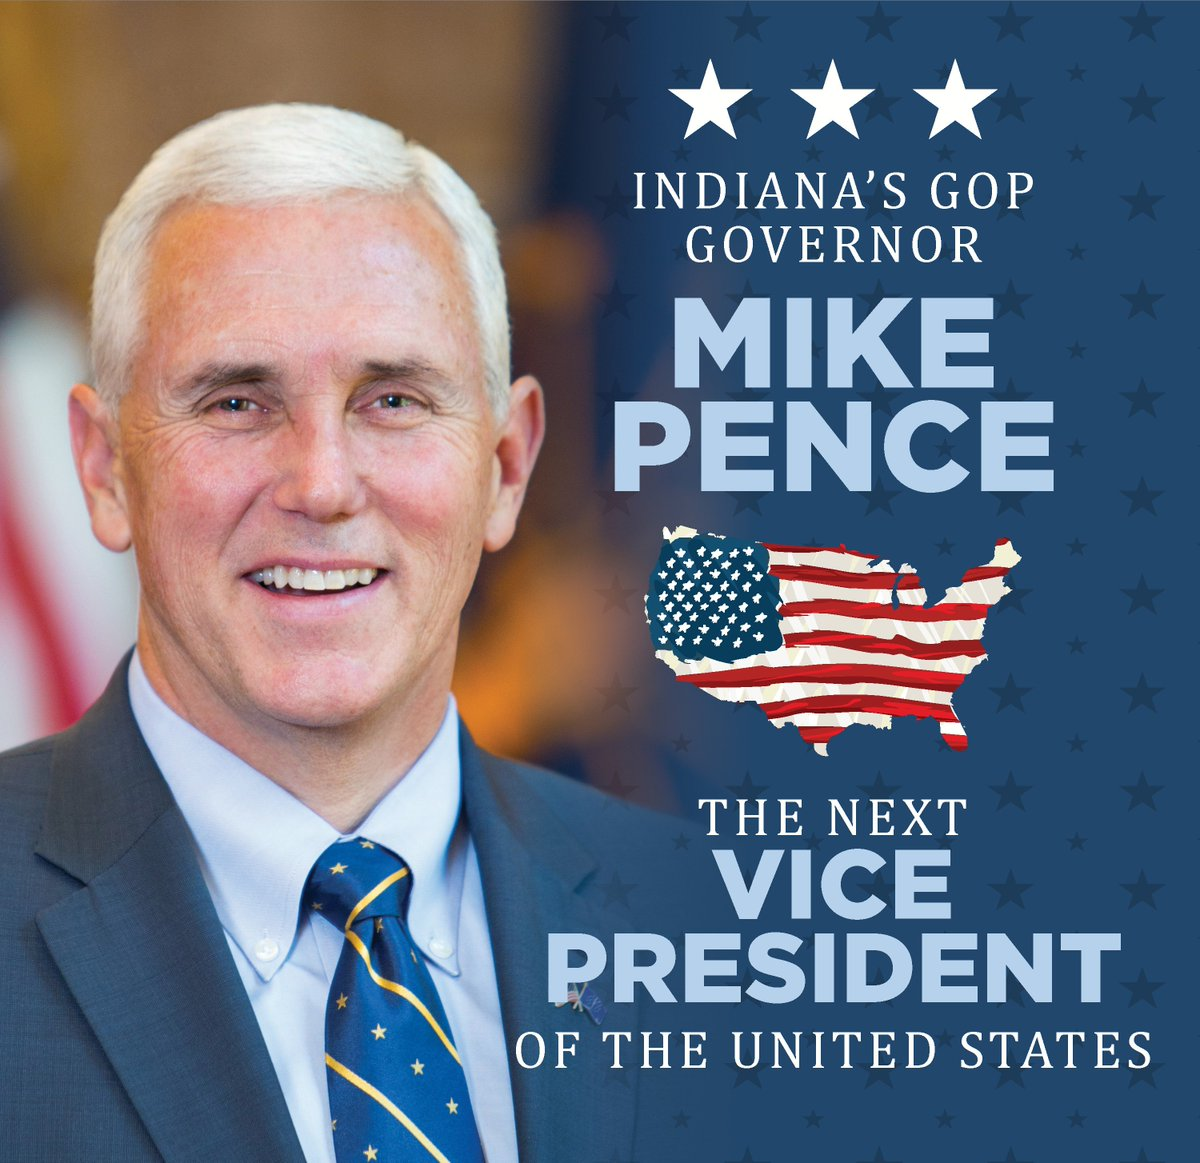 Congratulations to Gov @Mike_Pence on his selection as the GOP Vice Presidential nominee! https://t.co/tqeVxQpx50 https://t.co/nGWF9qGWUF